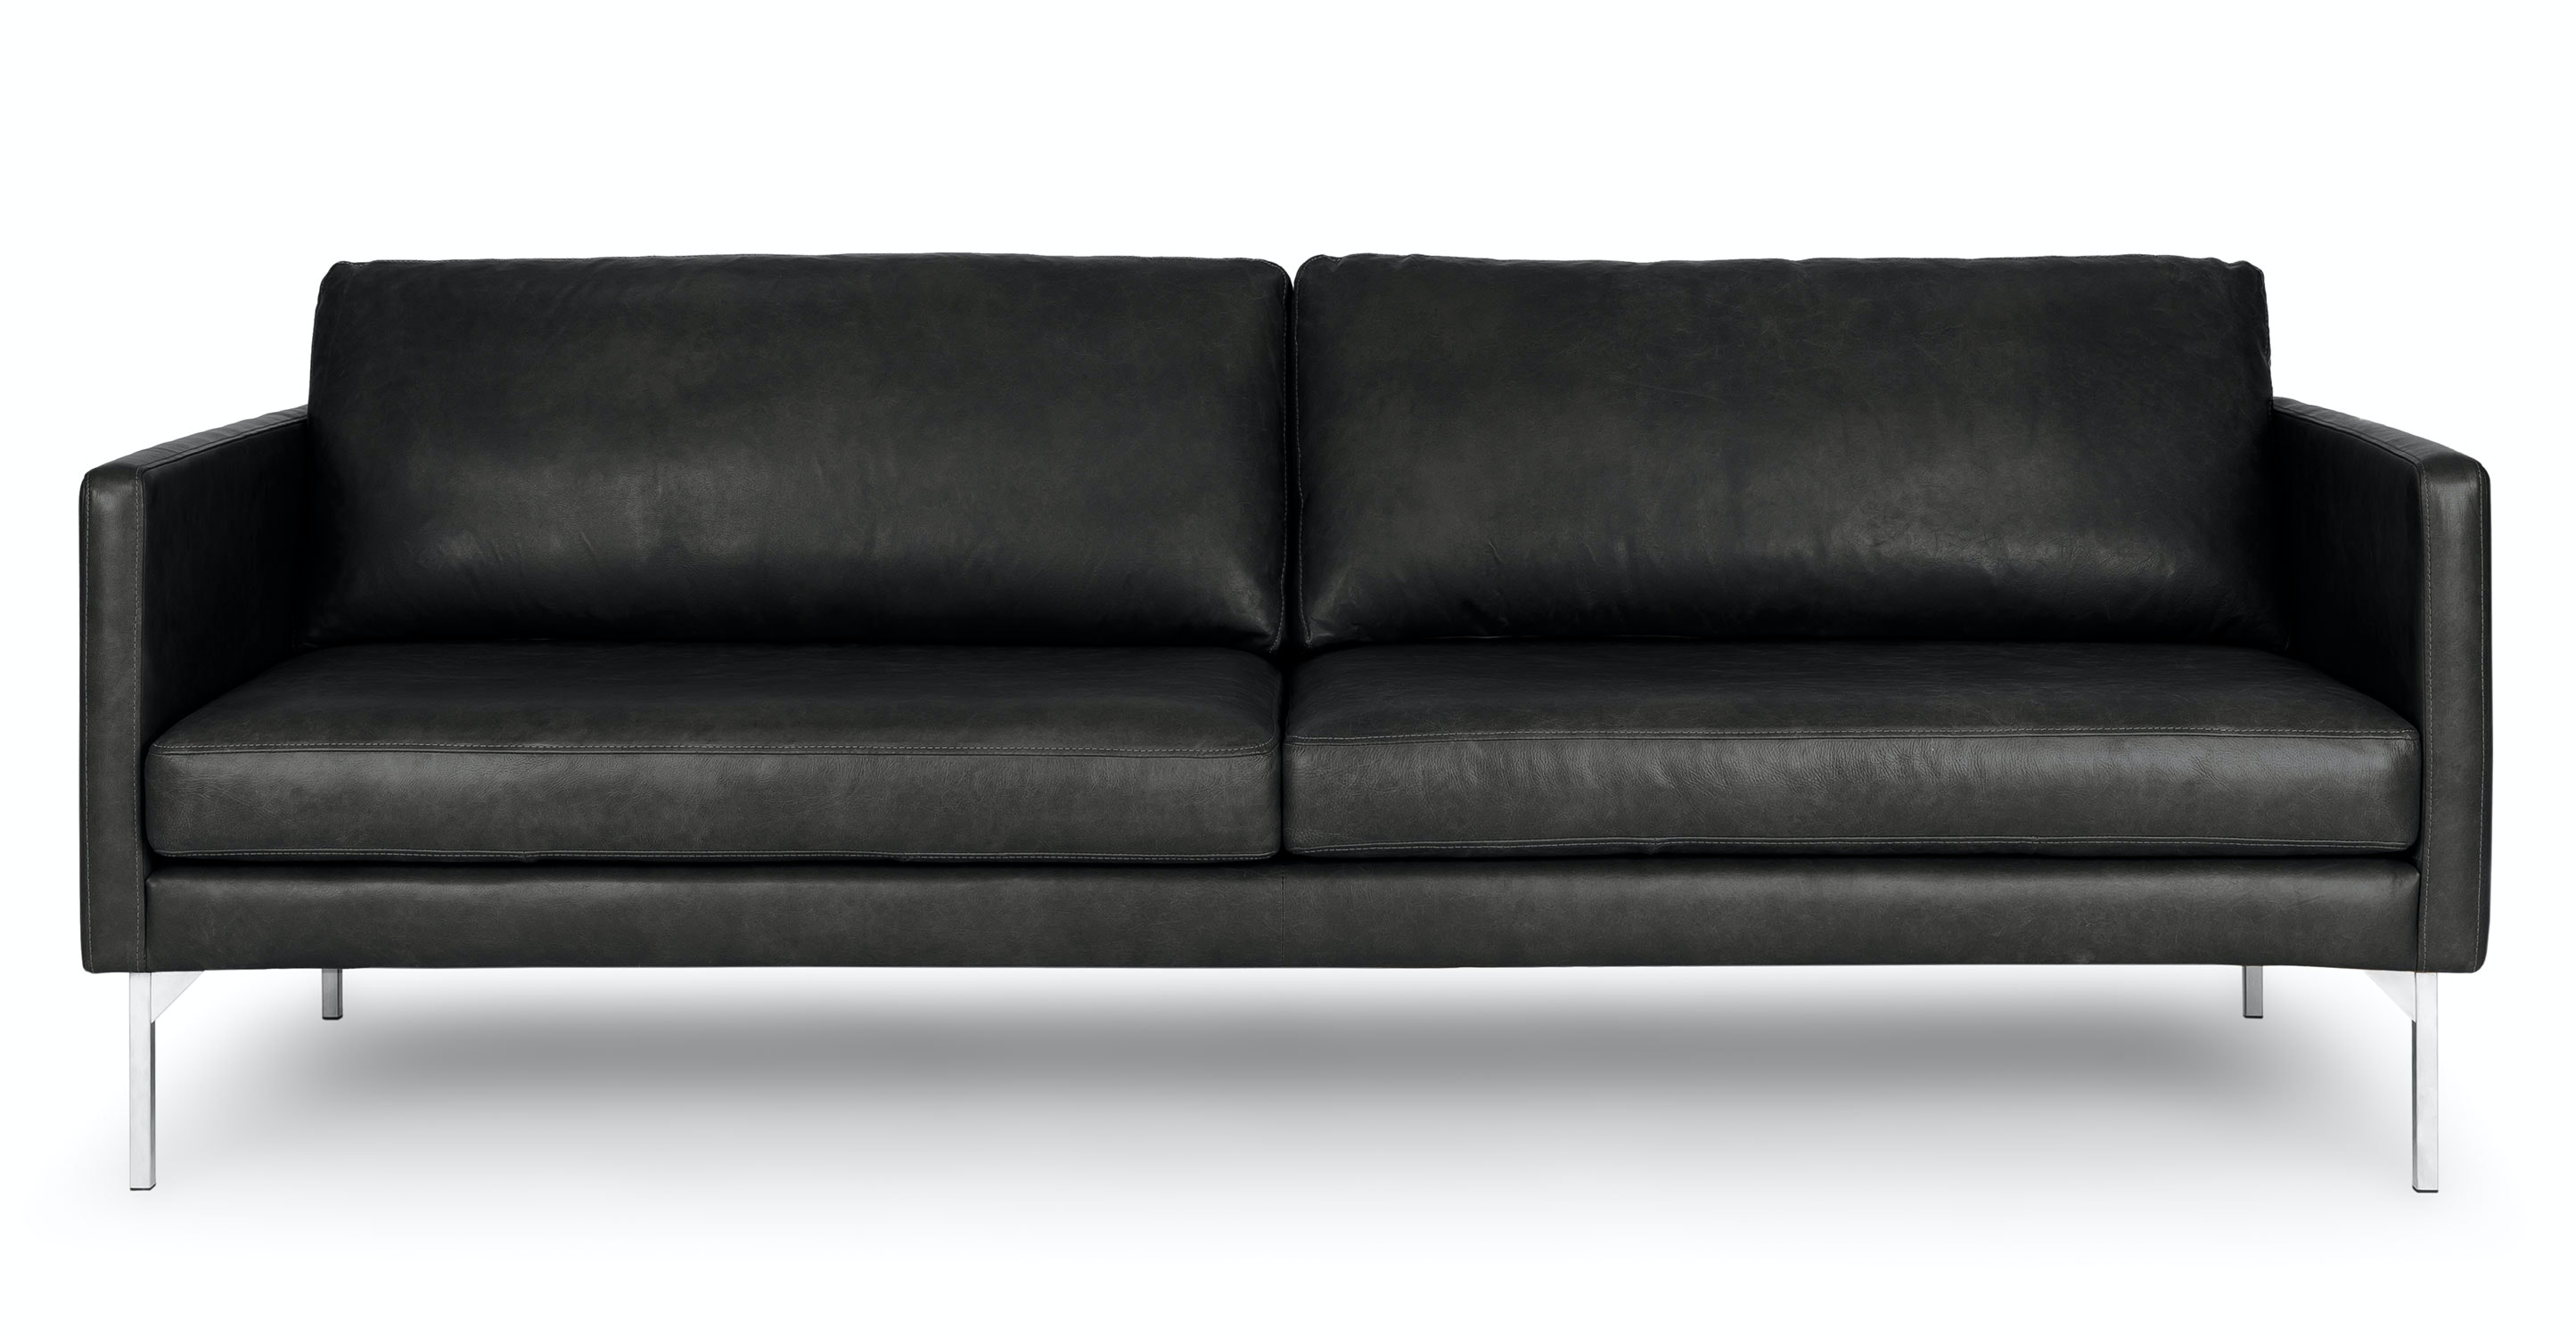 Black Leather Sofa, 3 Seater, Steel Legs | Article Echo Contemporary  Furniture